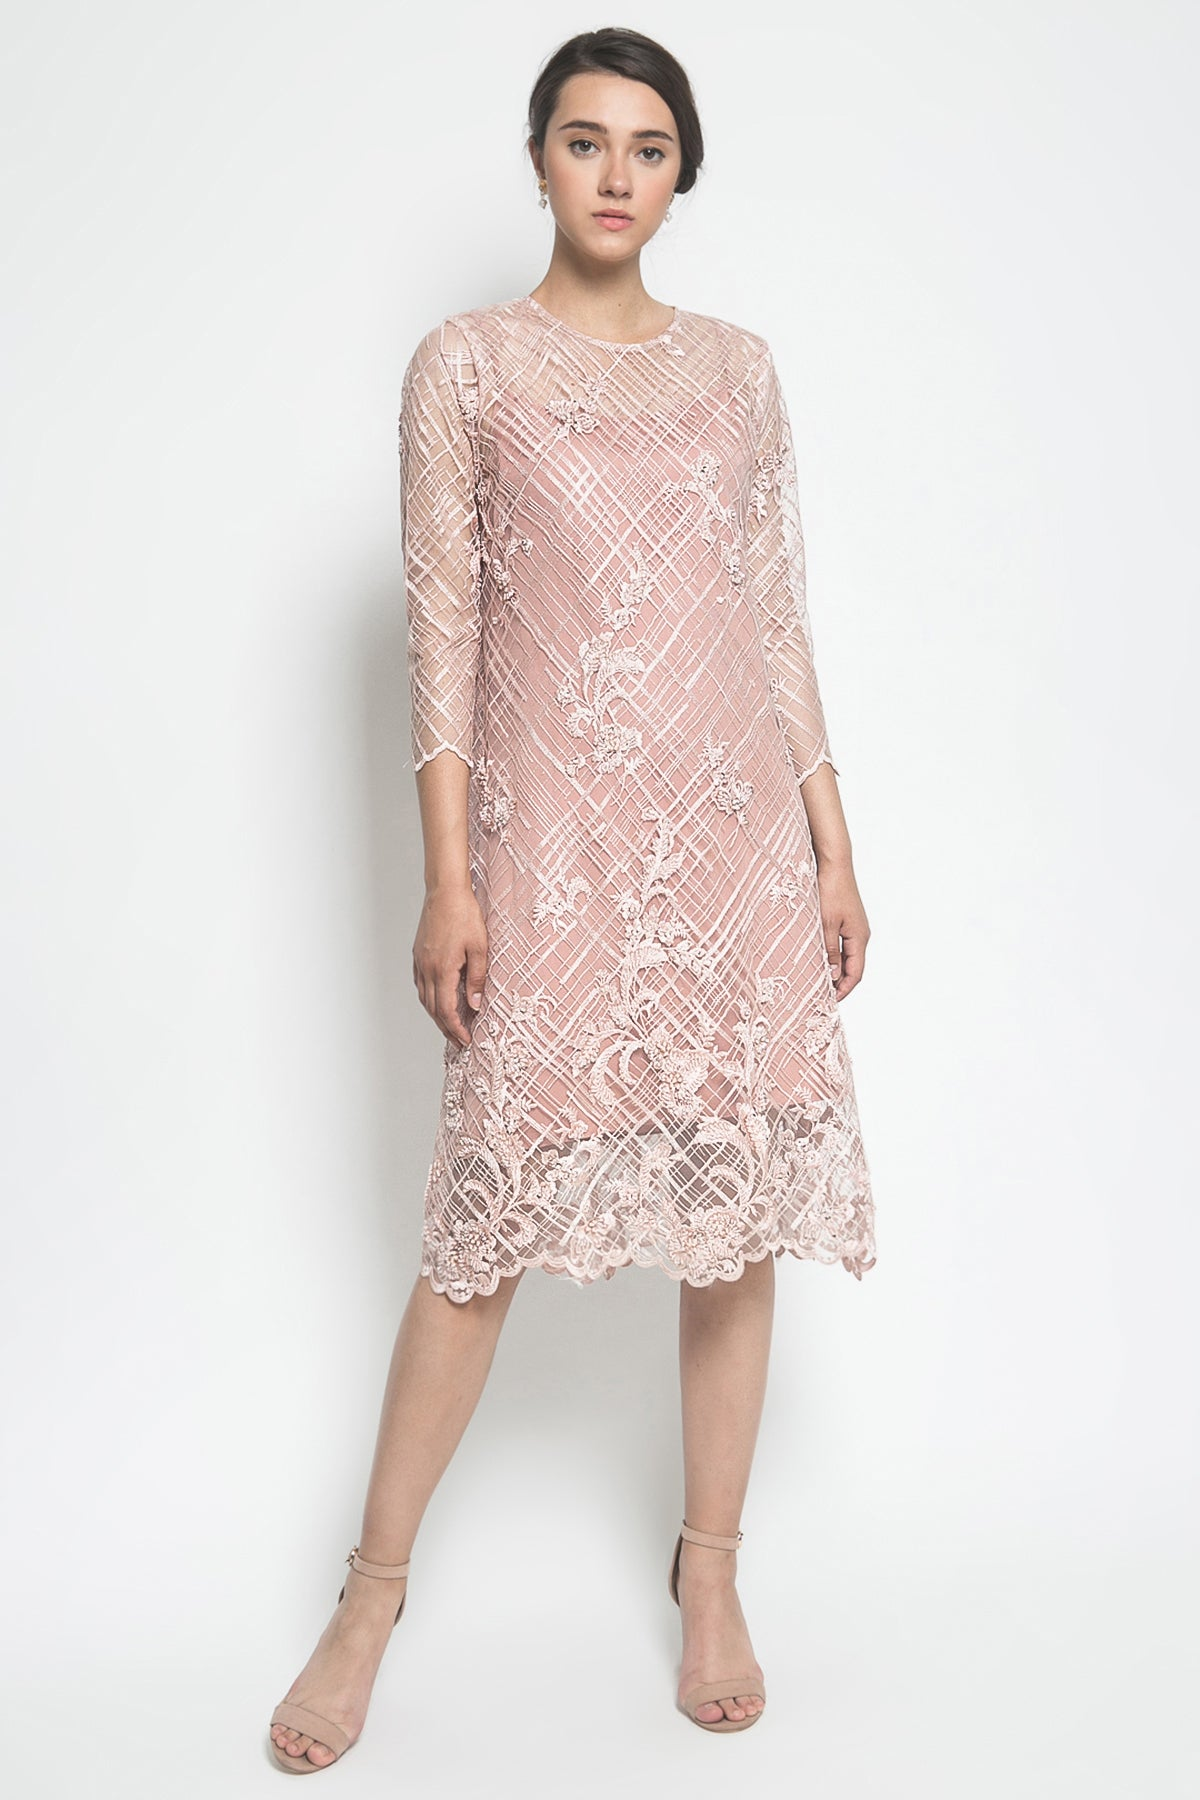 Adara Official Cathya Dress in Soft Pink